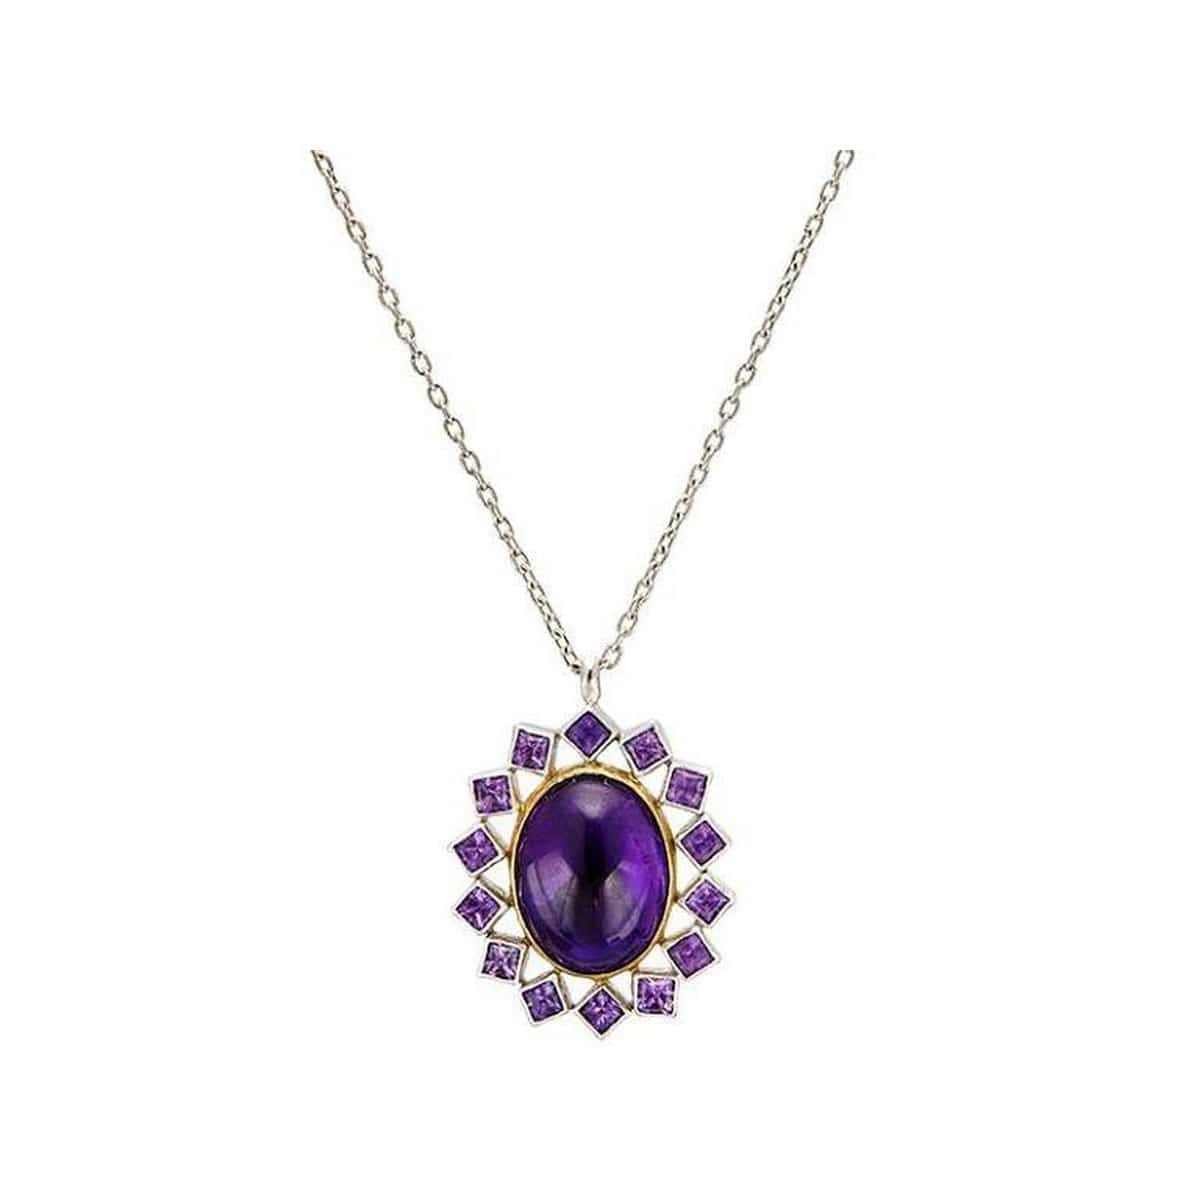 Galapagos Sterling Silver Amethyst Necklace - SN-U25375-AM-GURHAN-Renee Taylor Gallery